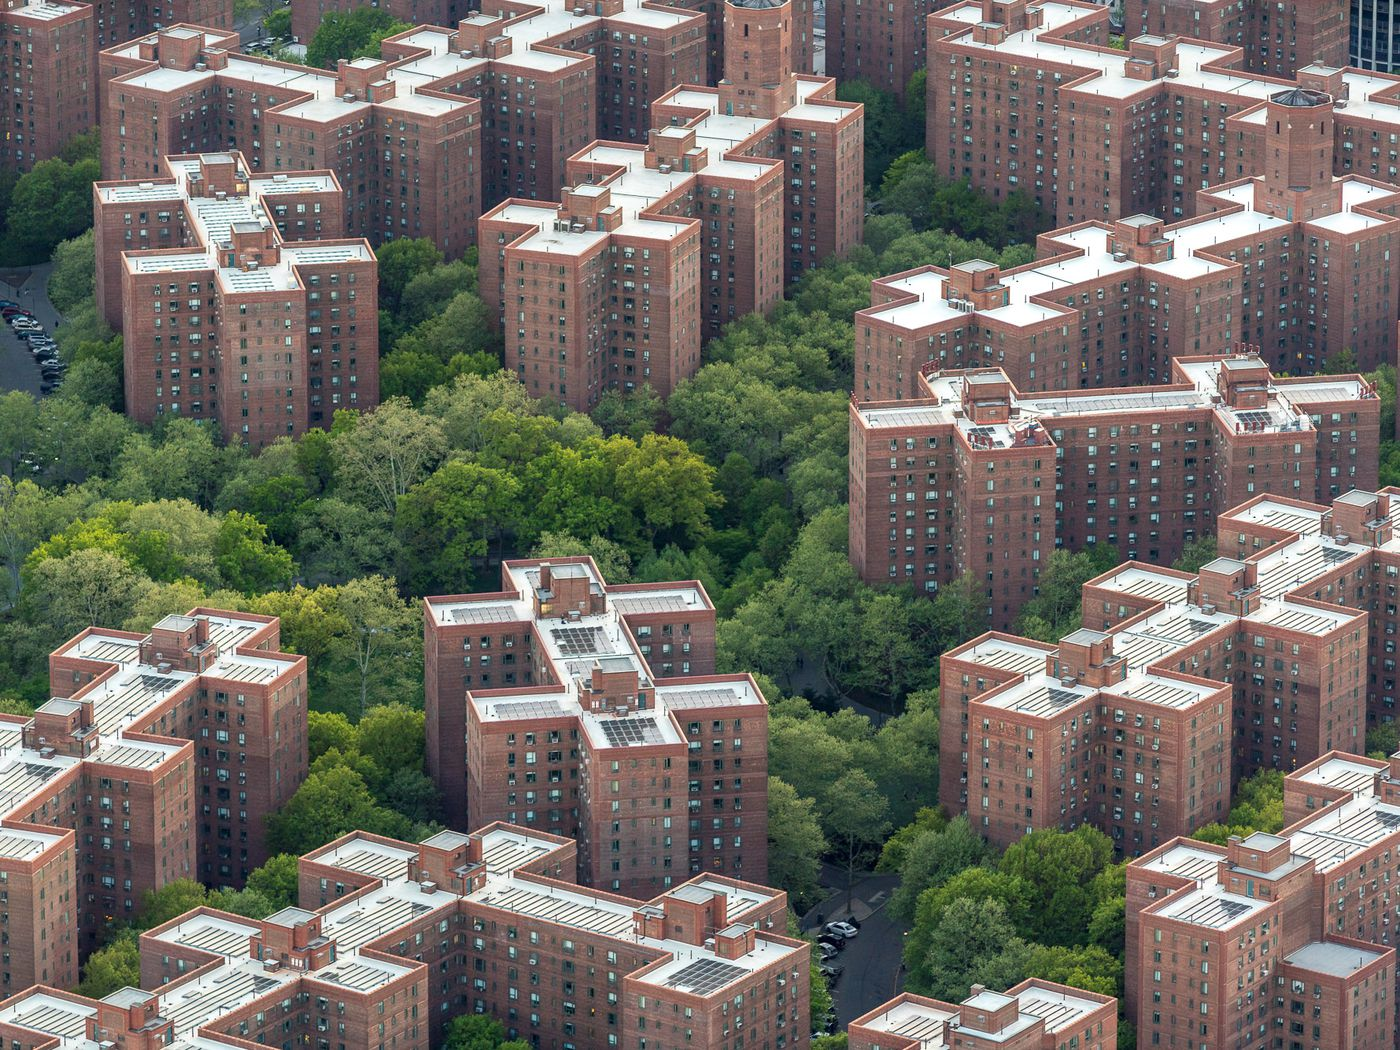 Rent-stabilized apartments in New York: Everything you need to know -  Curbed NY